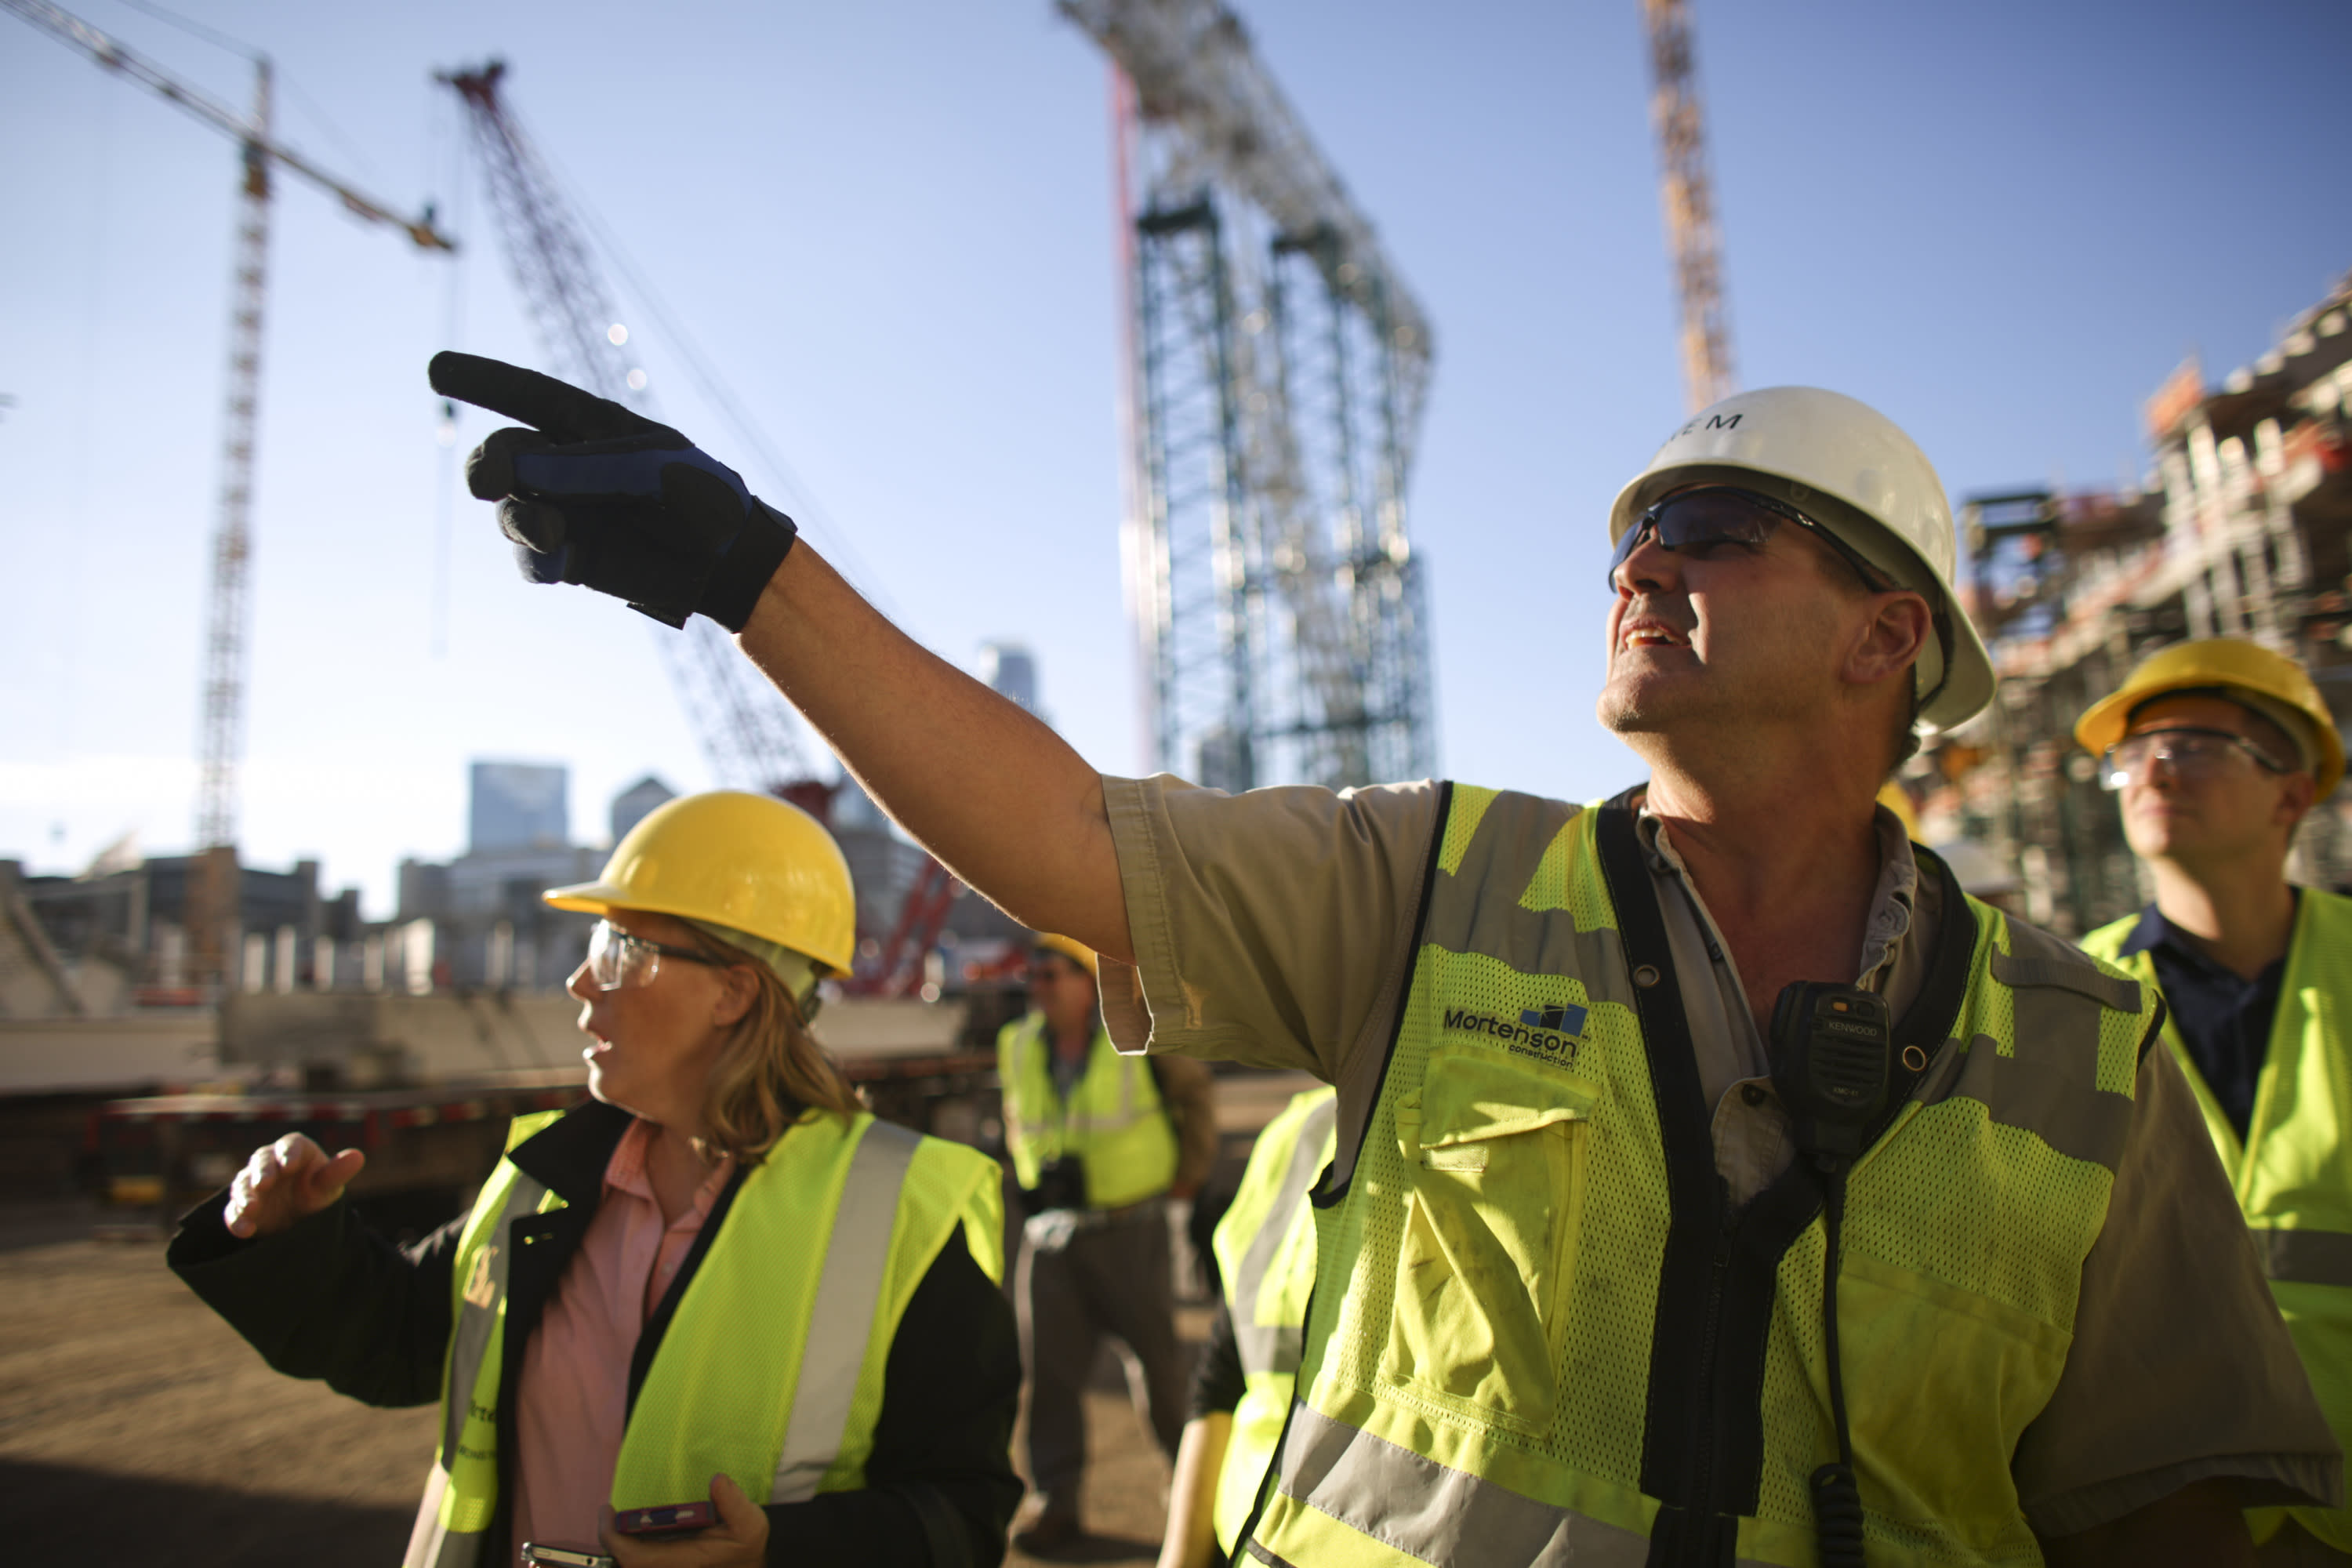 Vikings stadium builders work on career highlight